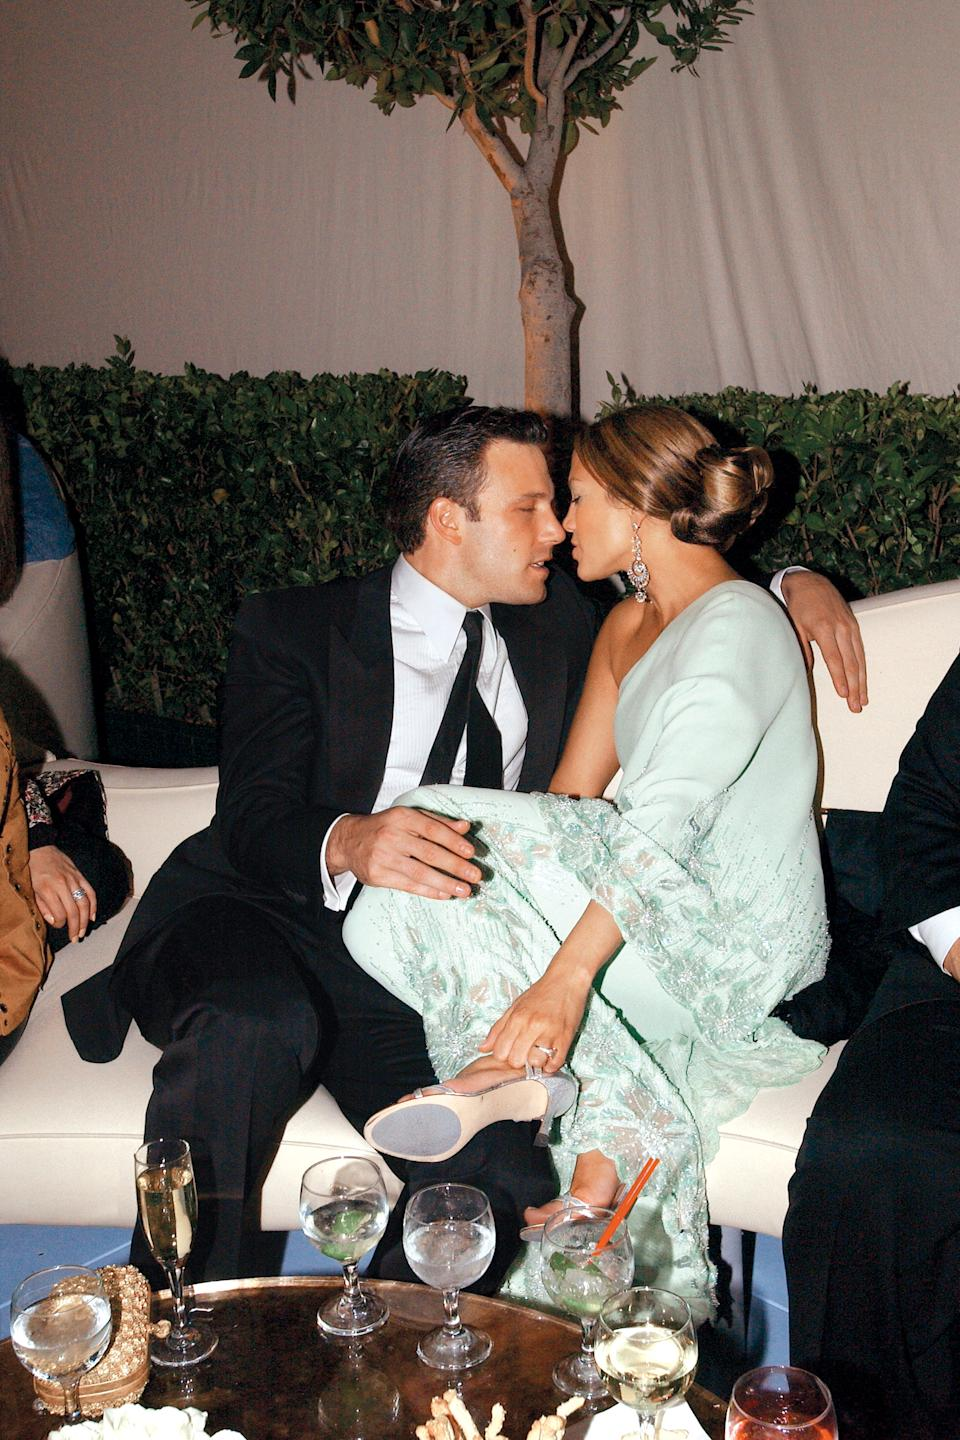 """<p>""""He is reciprocating and looking right back into her eyes... but it's still not as aggressive as she is. It's very consistent that she's the one that's into him a lot more than he's into her."""" - Dr. Lillian Glass, body language expert (Photo by Patrick McMullan/Getty Images)</p>"""